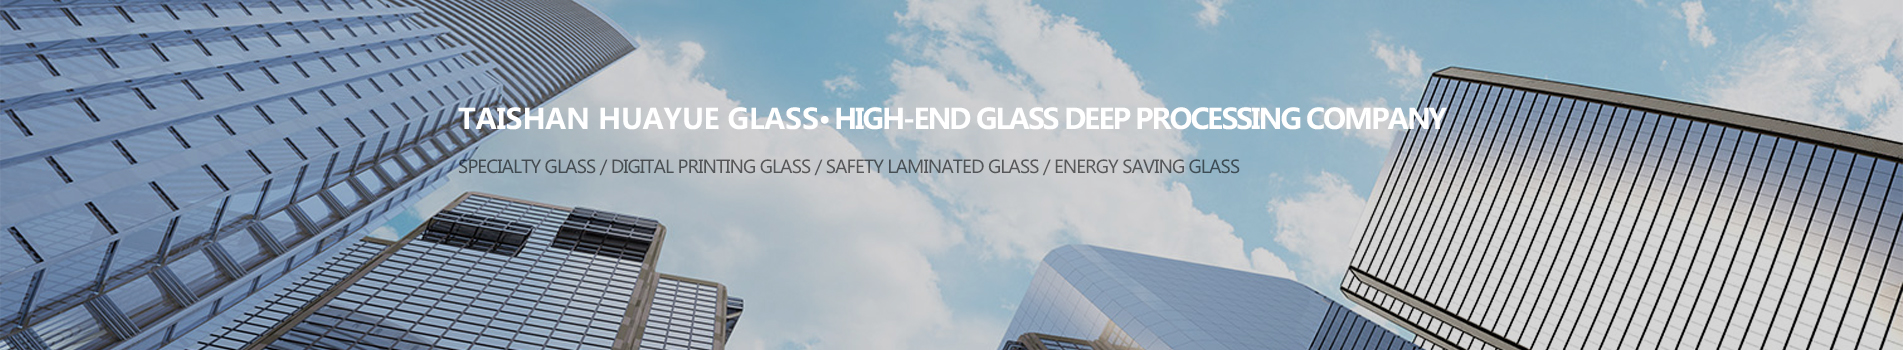 Hollow energy-saving glass